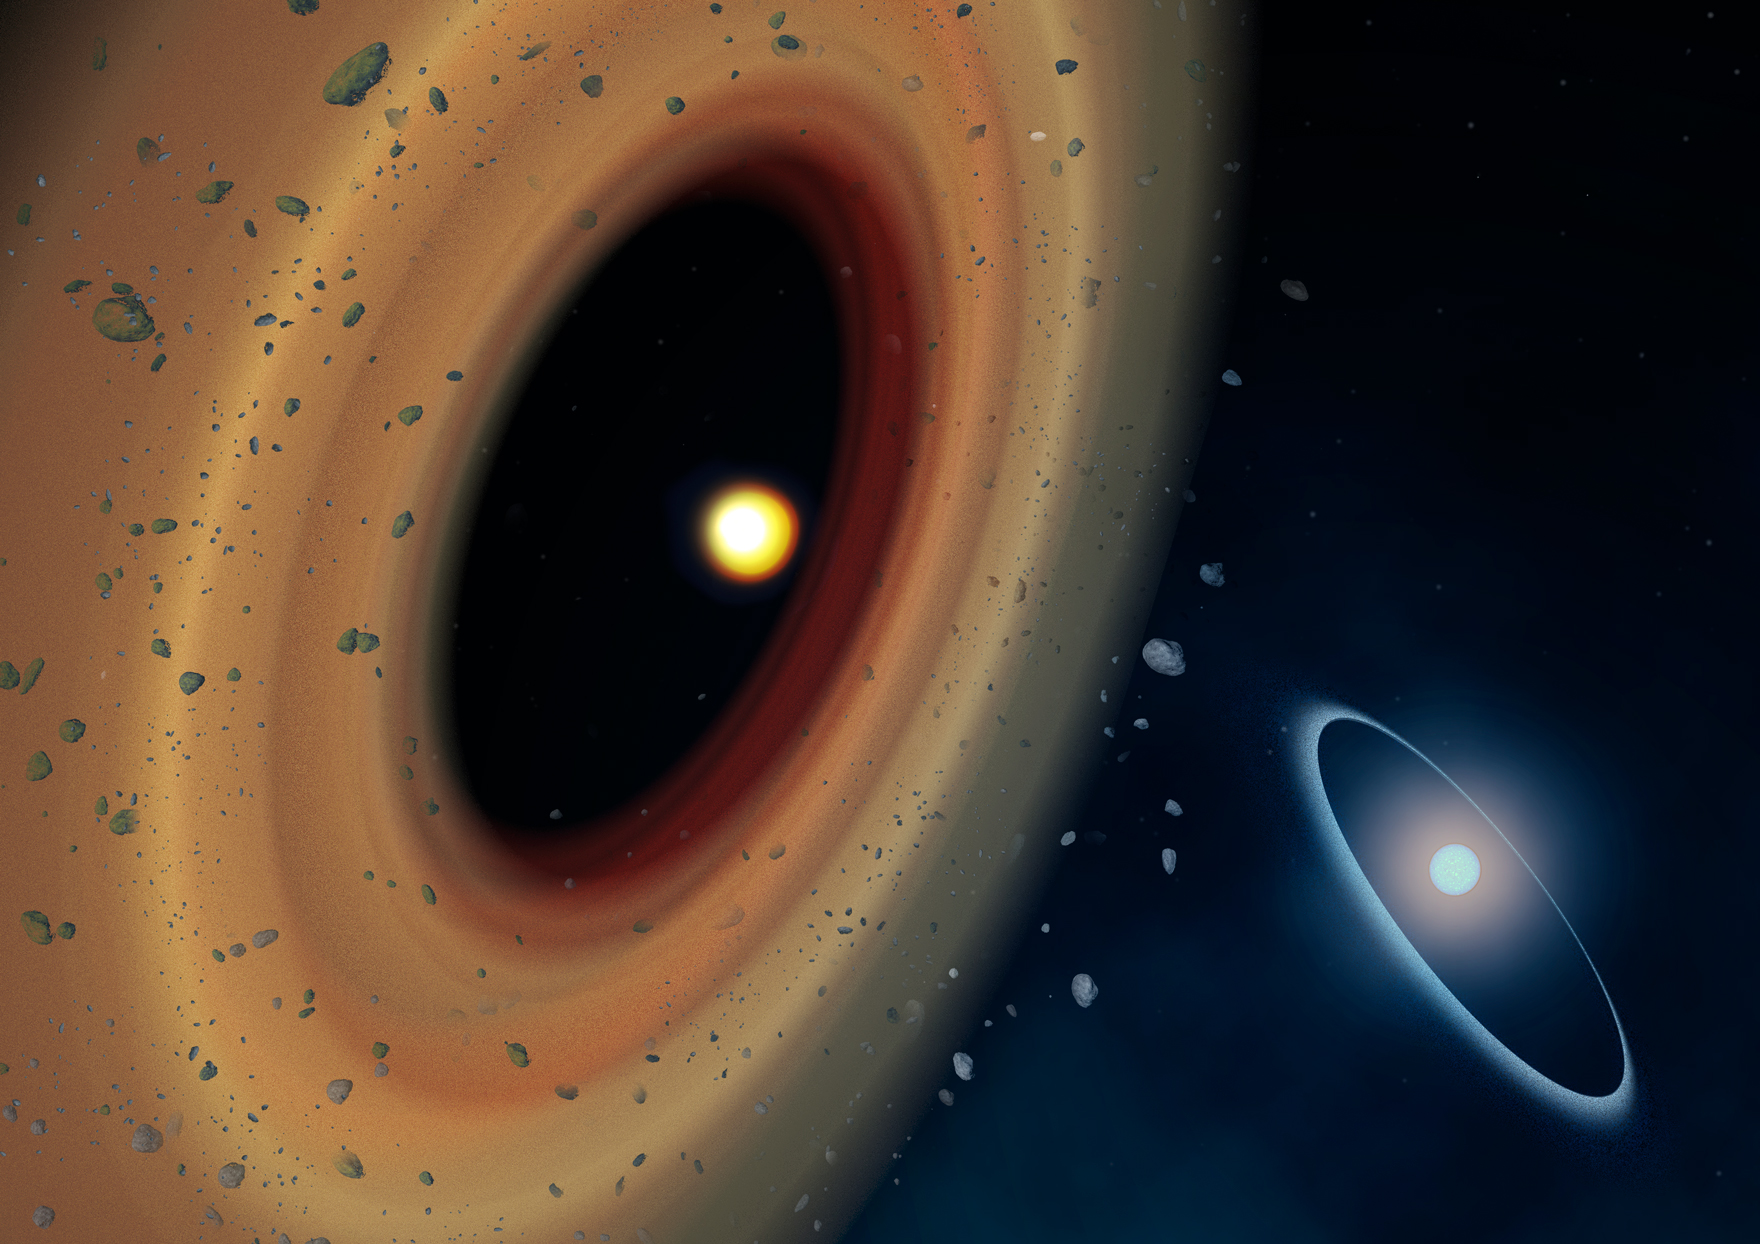 An artist's conception of the newly discovered debris disk around the red dwarf Fomalhaut C. Fomalhaut A and its famous disk lies in the background. Image credit: Amanda Smith.